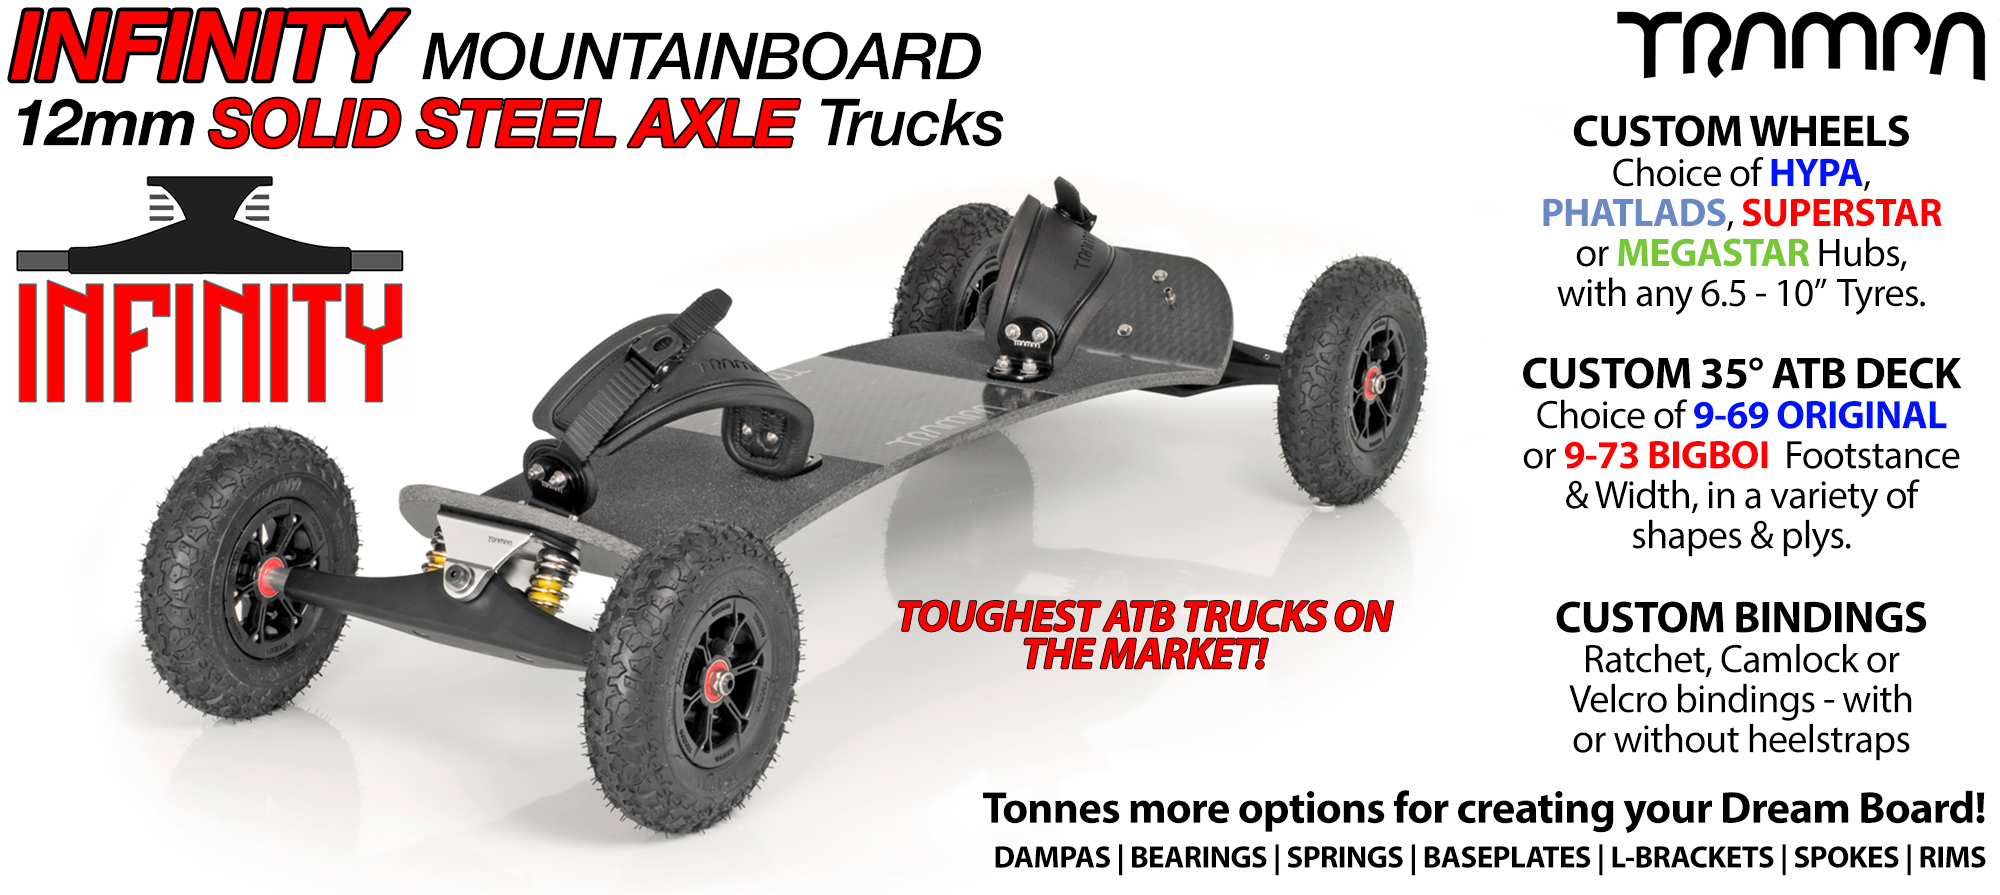 TRAMPA Mountainboard with 12mm SOLID Axle INFINITY Trucks RATCHET Bindings & Custom Wheels